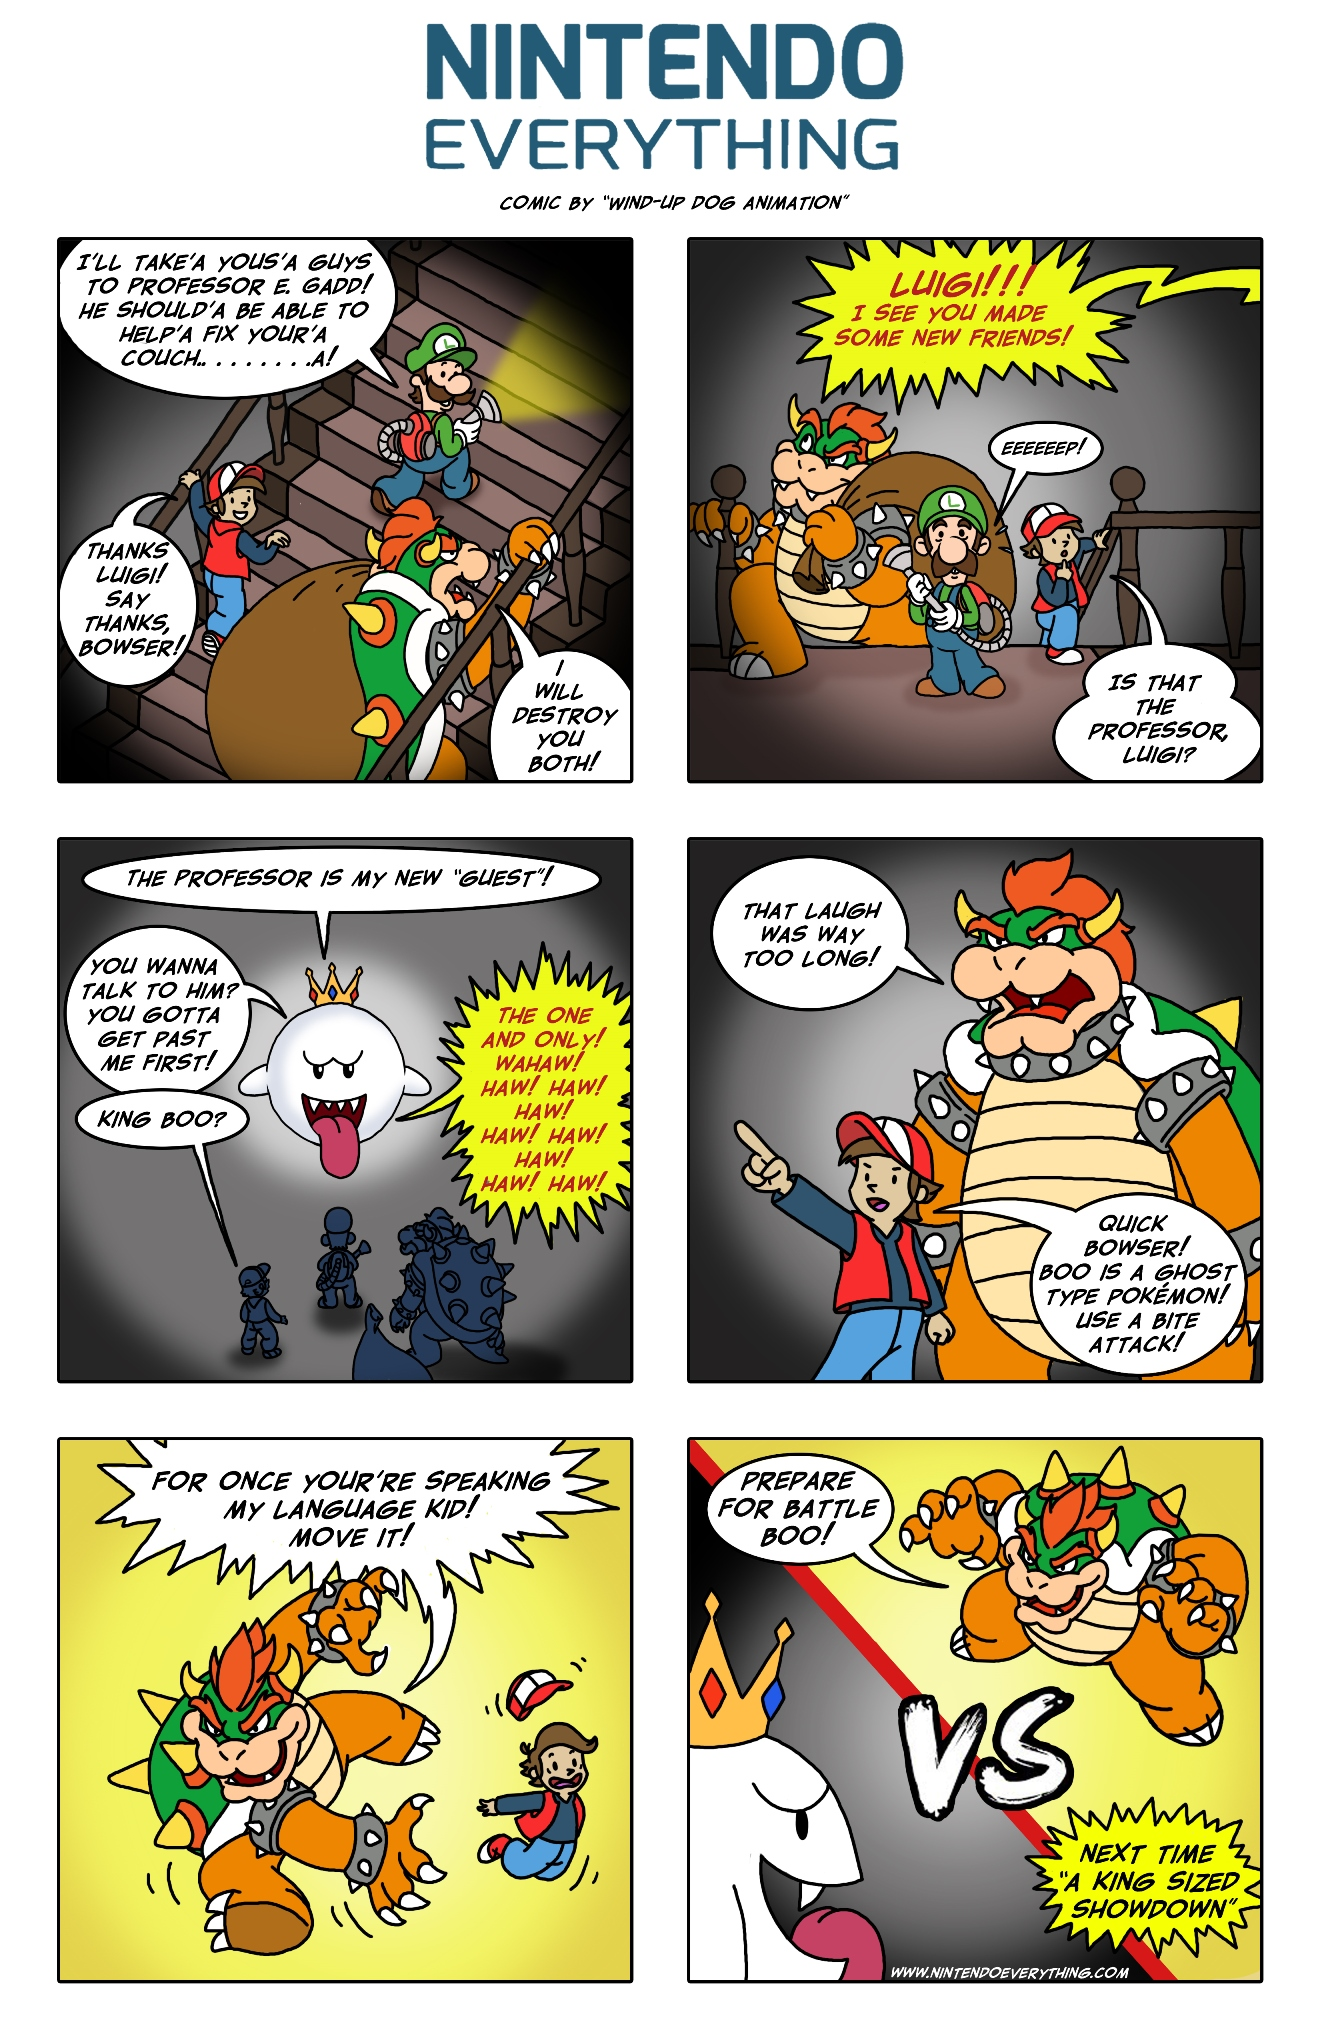 nintendo-everything-comic-10